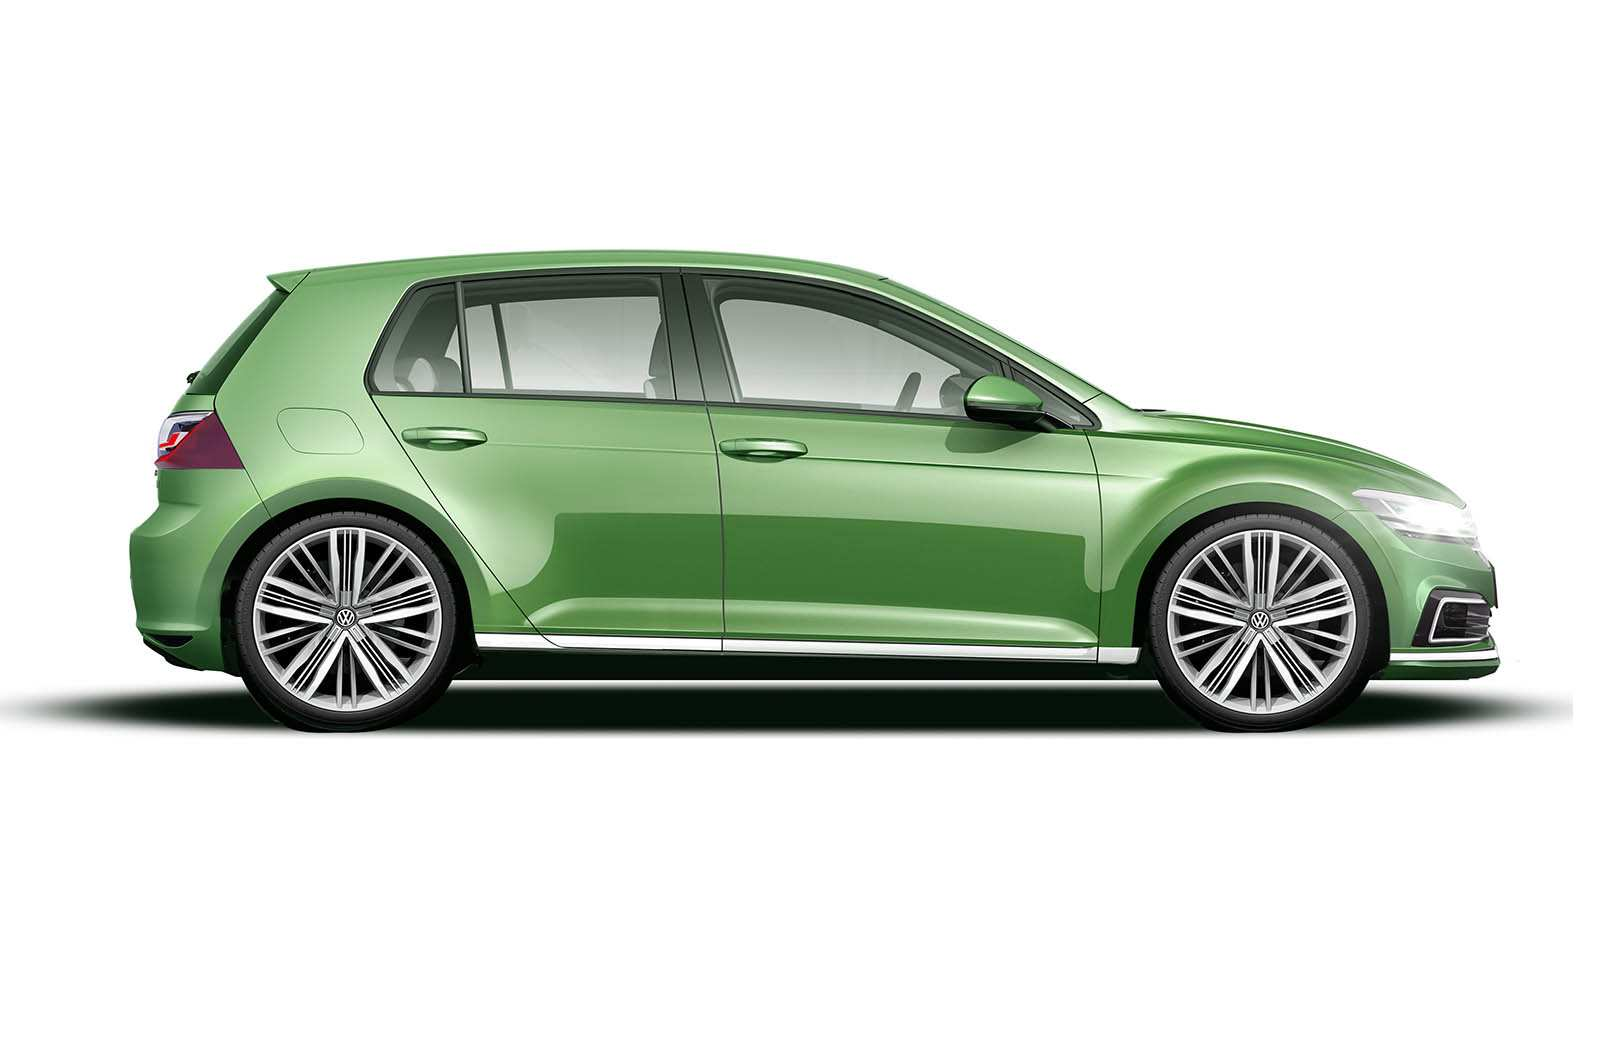 52 The Best Volkswagen Golf Hybrid 2020 Price Design And Review